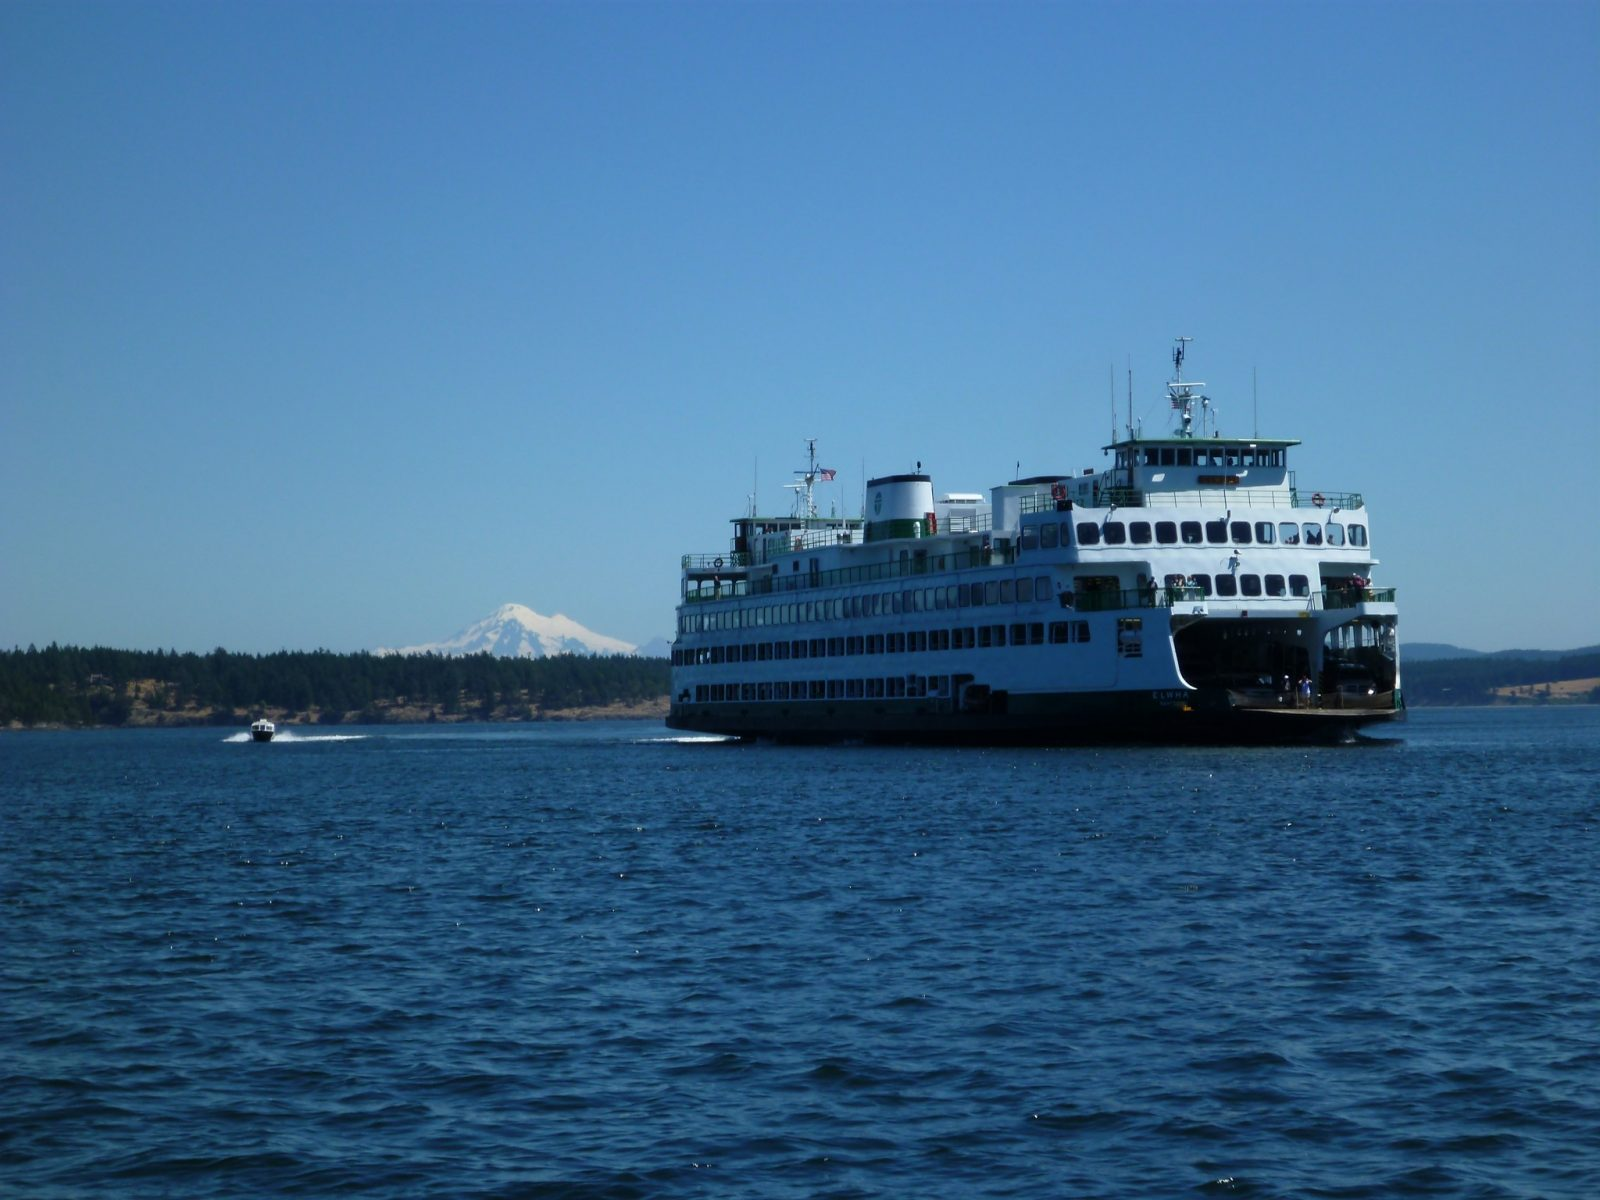 A white Washington State ferry with an open front end showing cars with a small powerboat next to it. There is a forested island in the background and a high snow capped mountain